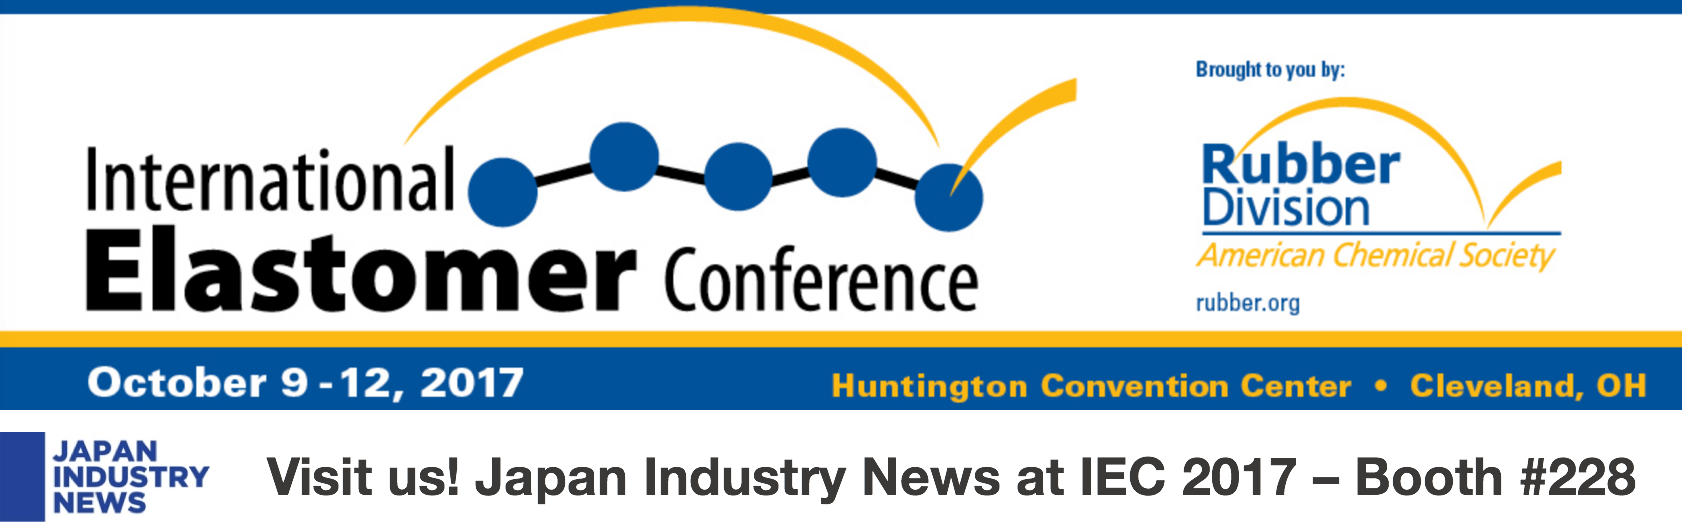 Japan Industry News at IEC 2017